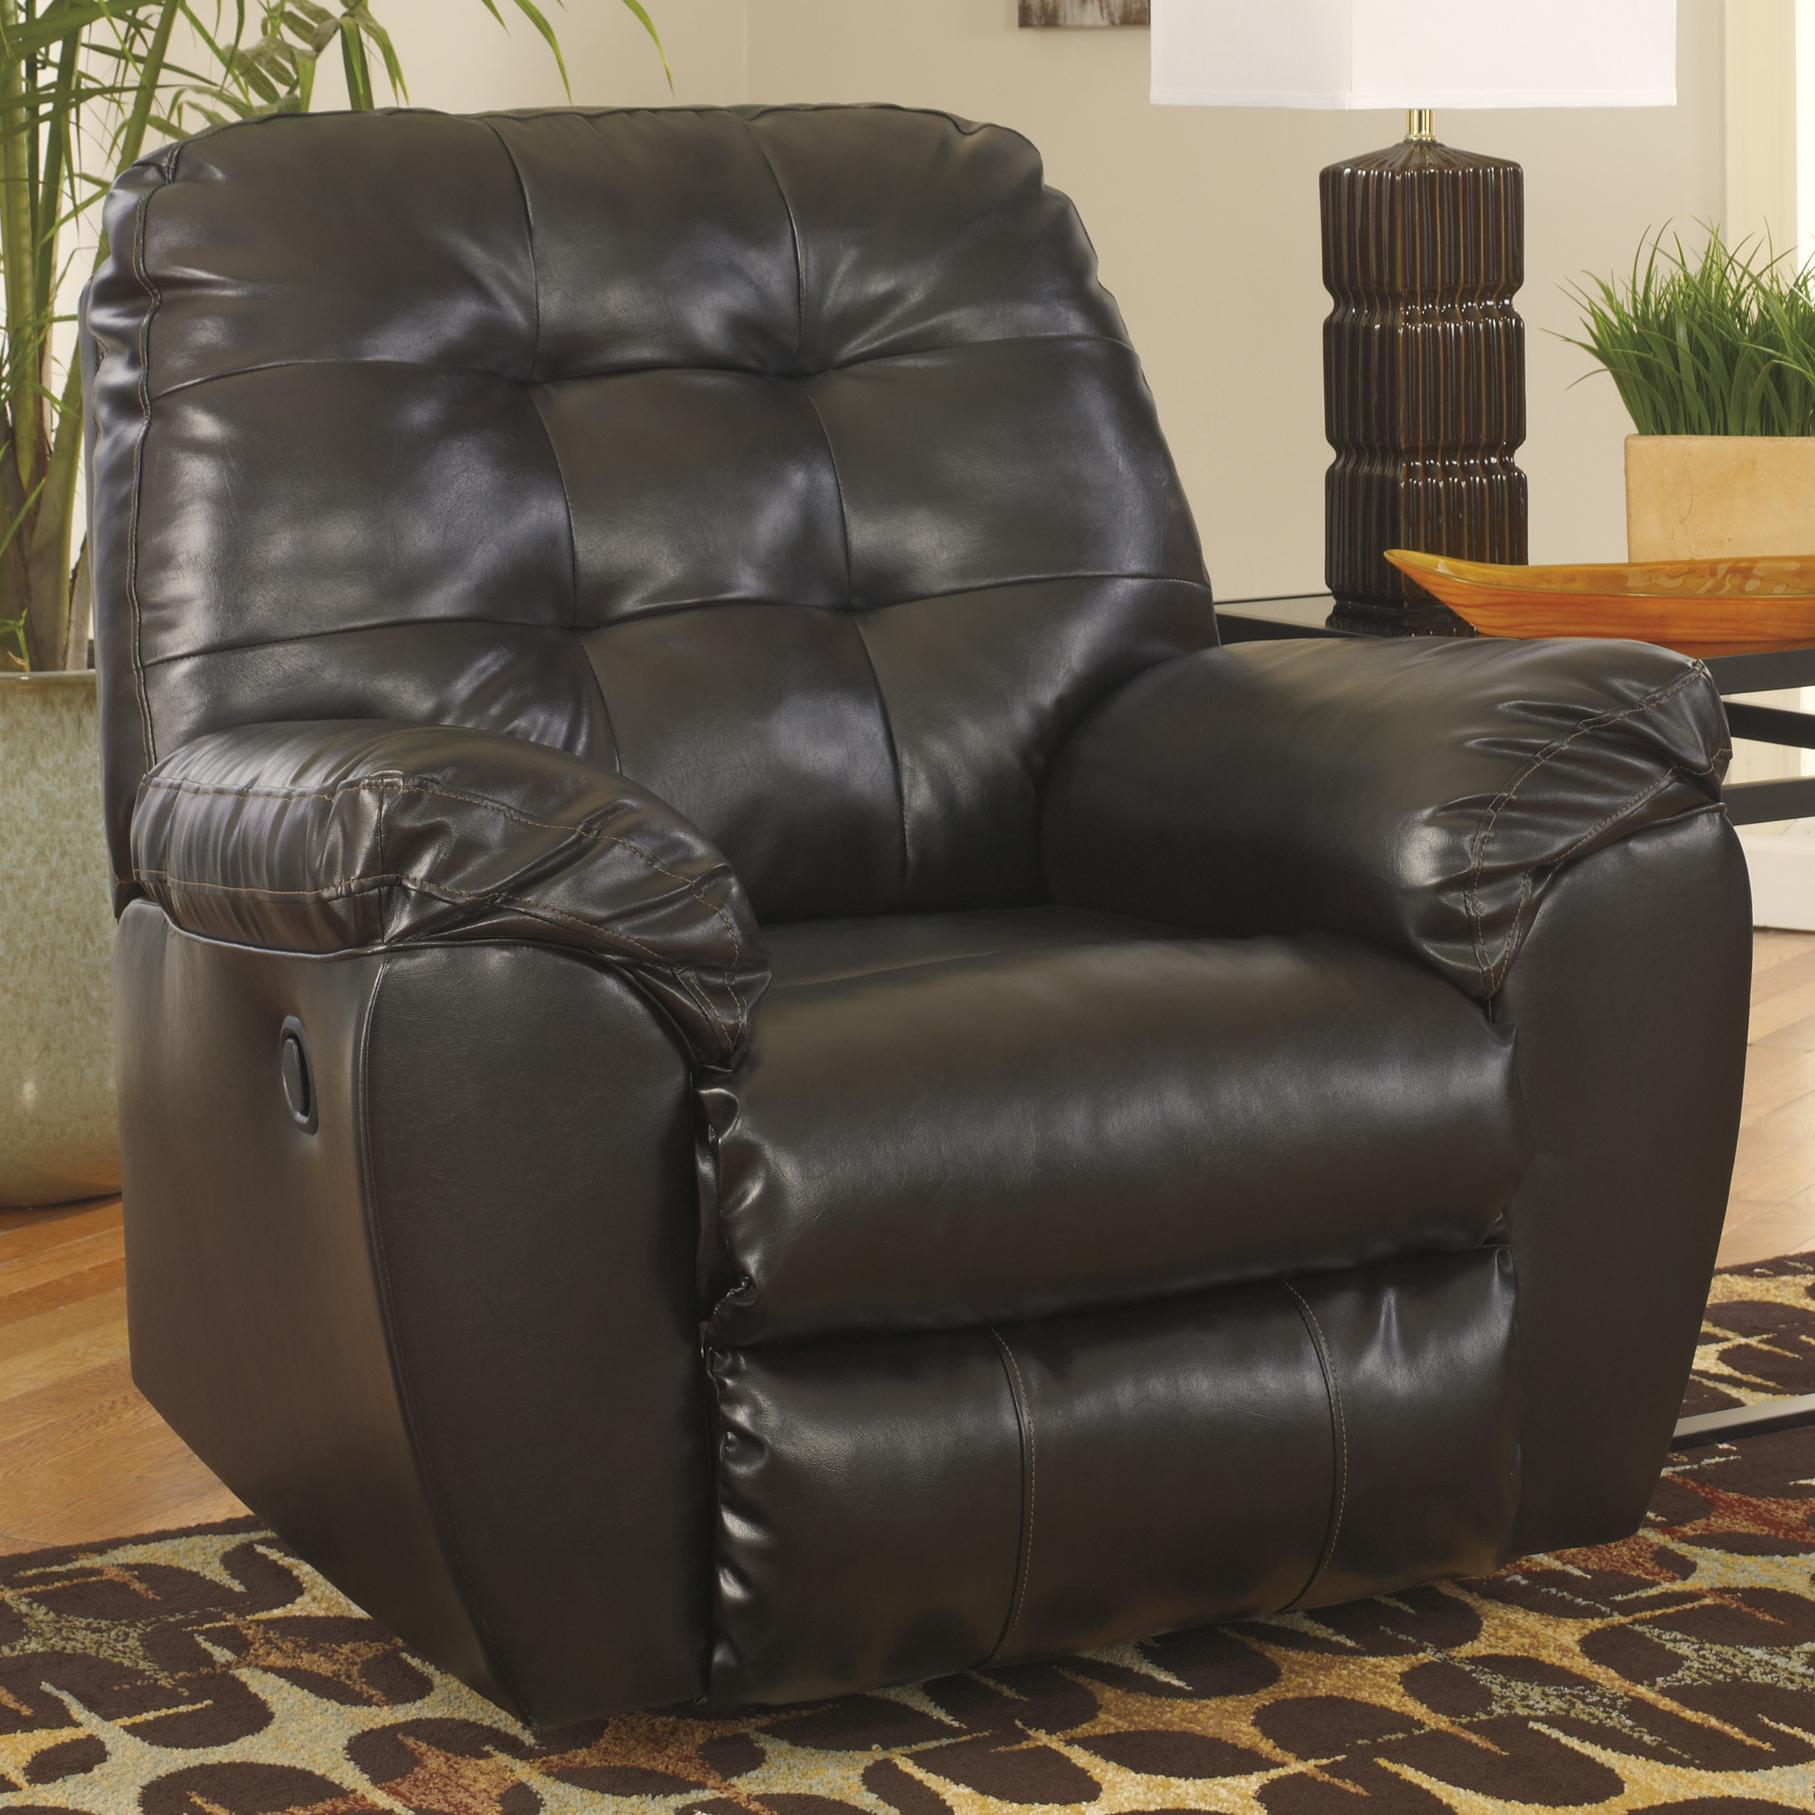 Signature Design by Ashley Alliston DuraBlend® - Chocolate Rocker Recliner - Item Number: 2010125